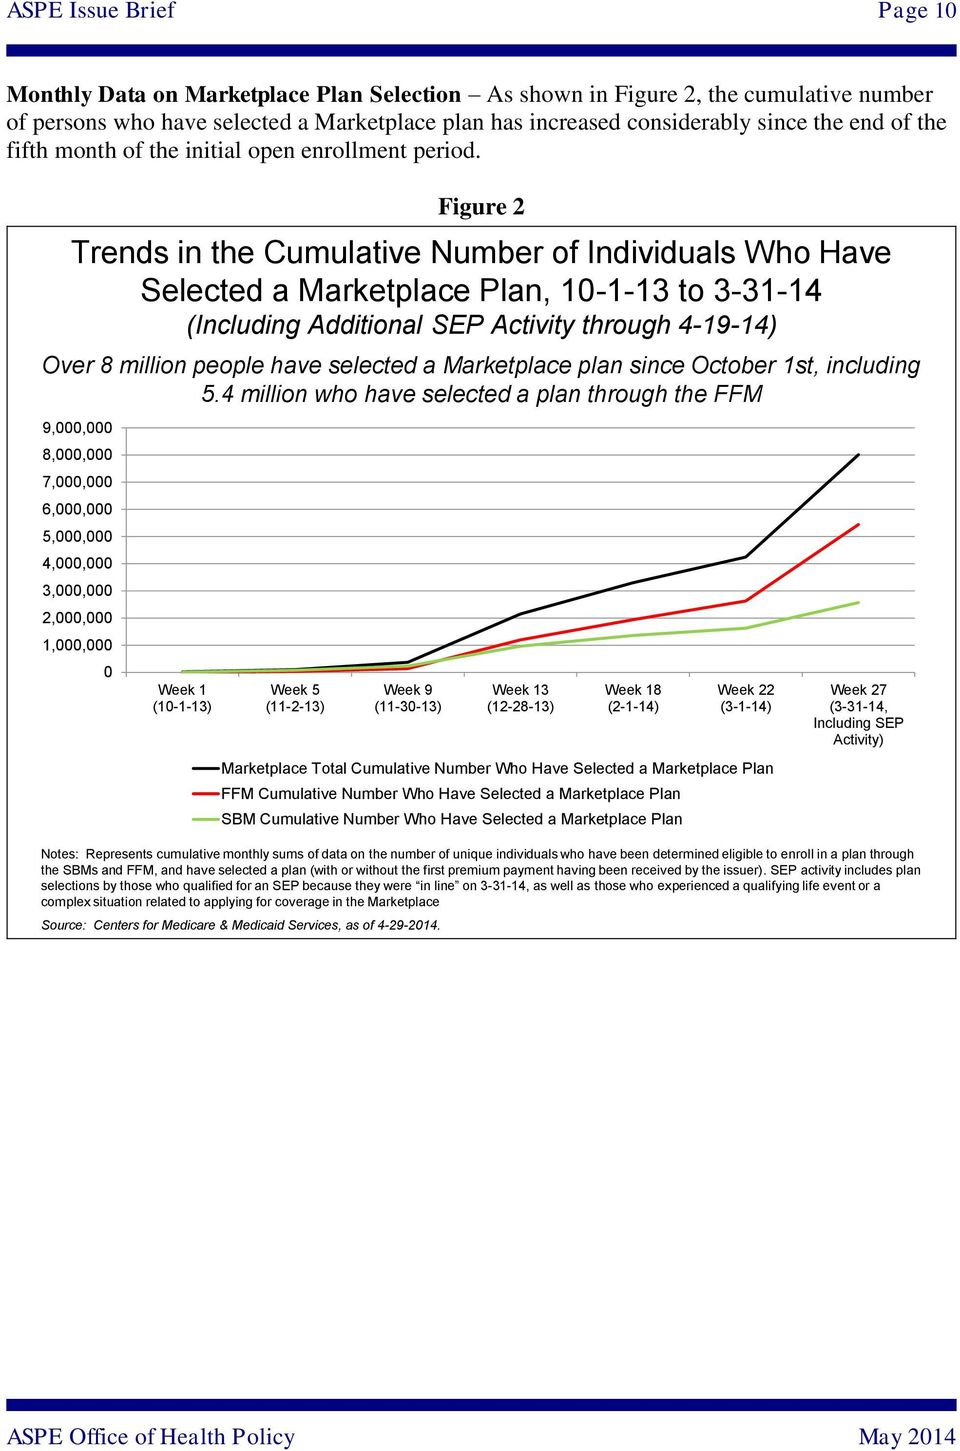 Figure 2 Trends in the Cumulative Number of Individuals Who Have Selected a Marketplace Plan, 10-1-13 to 3-31-14 (Including Additional SEP Activity through 4-19-14) Over 8 million people have